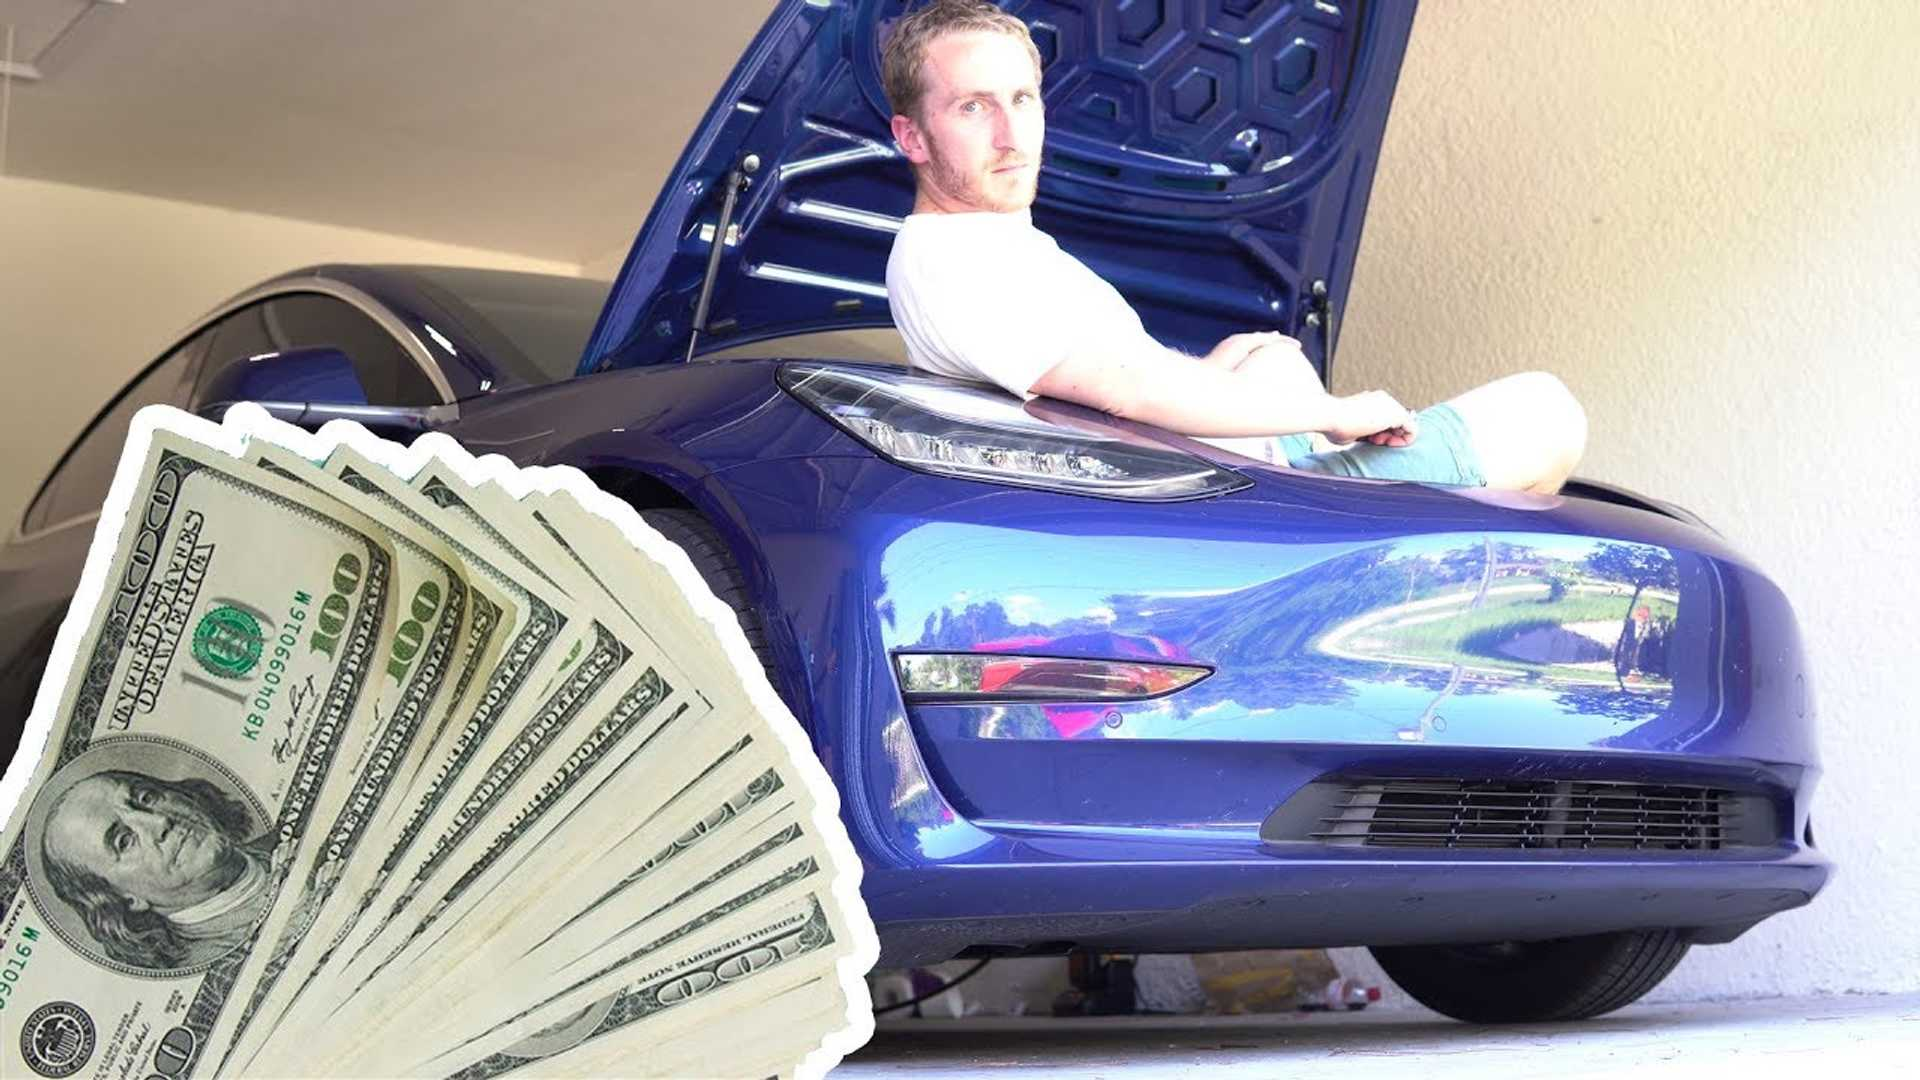 Do You Have To Be Rich To Afford A $50,000 Tesla With An $800 Payment?